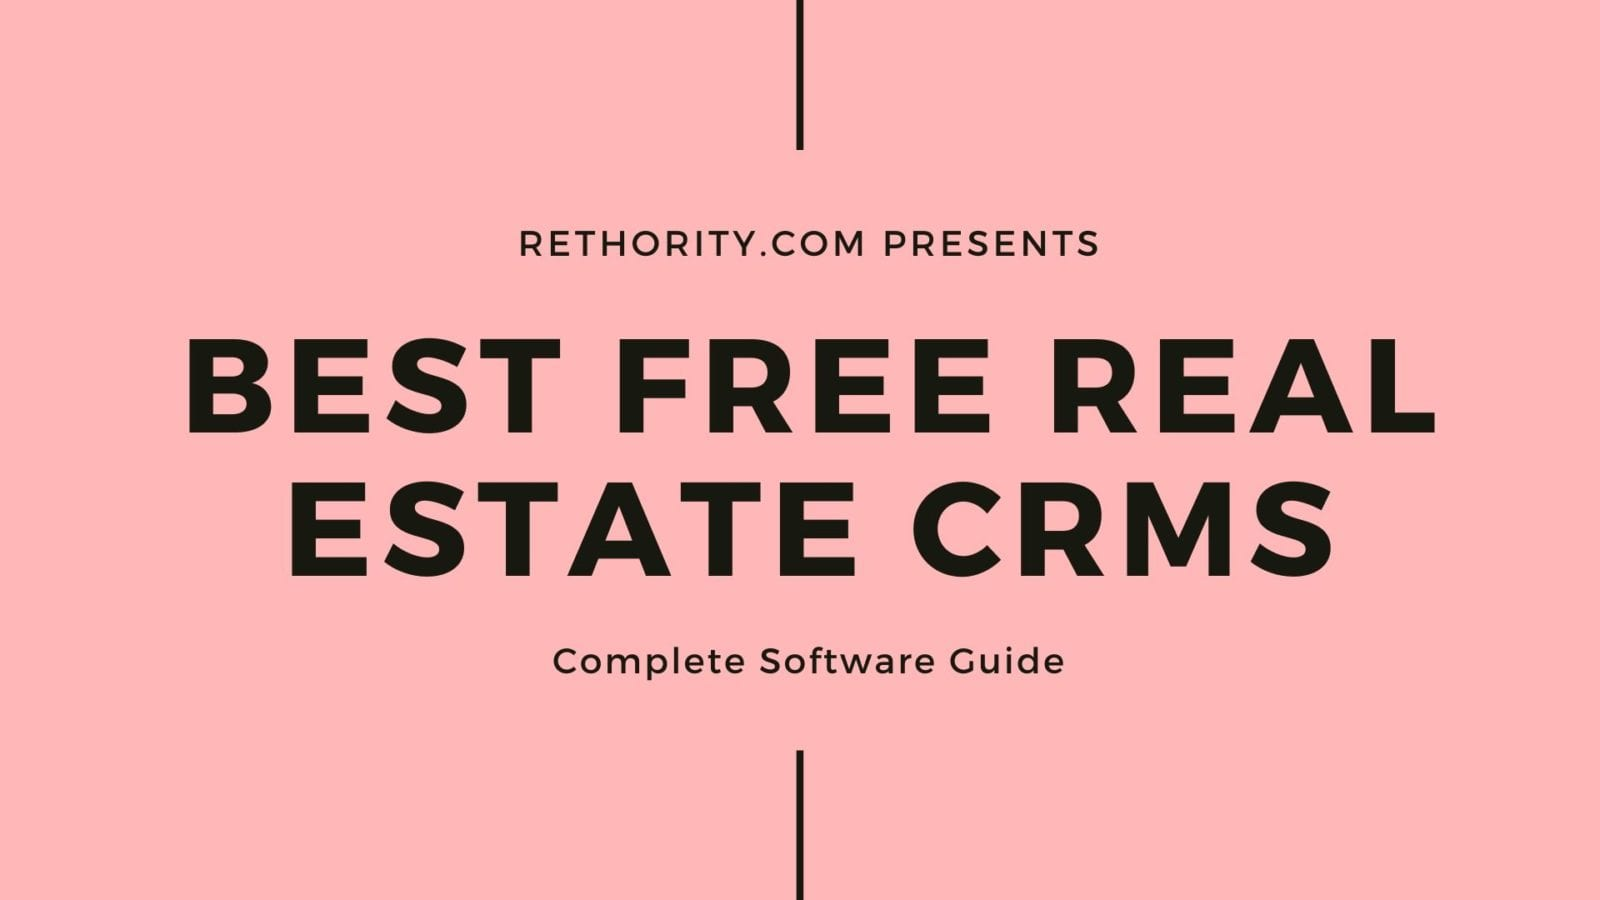 Best free real estate crm platforms